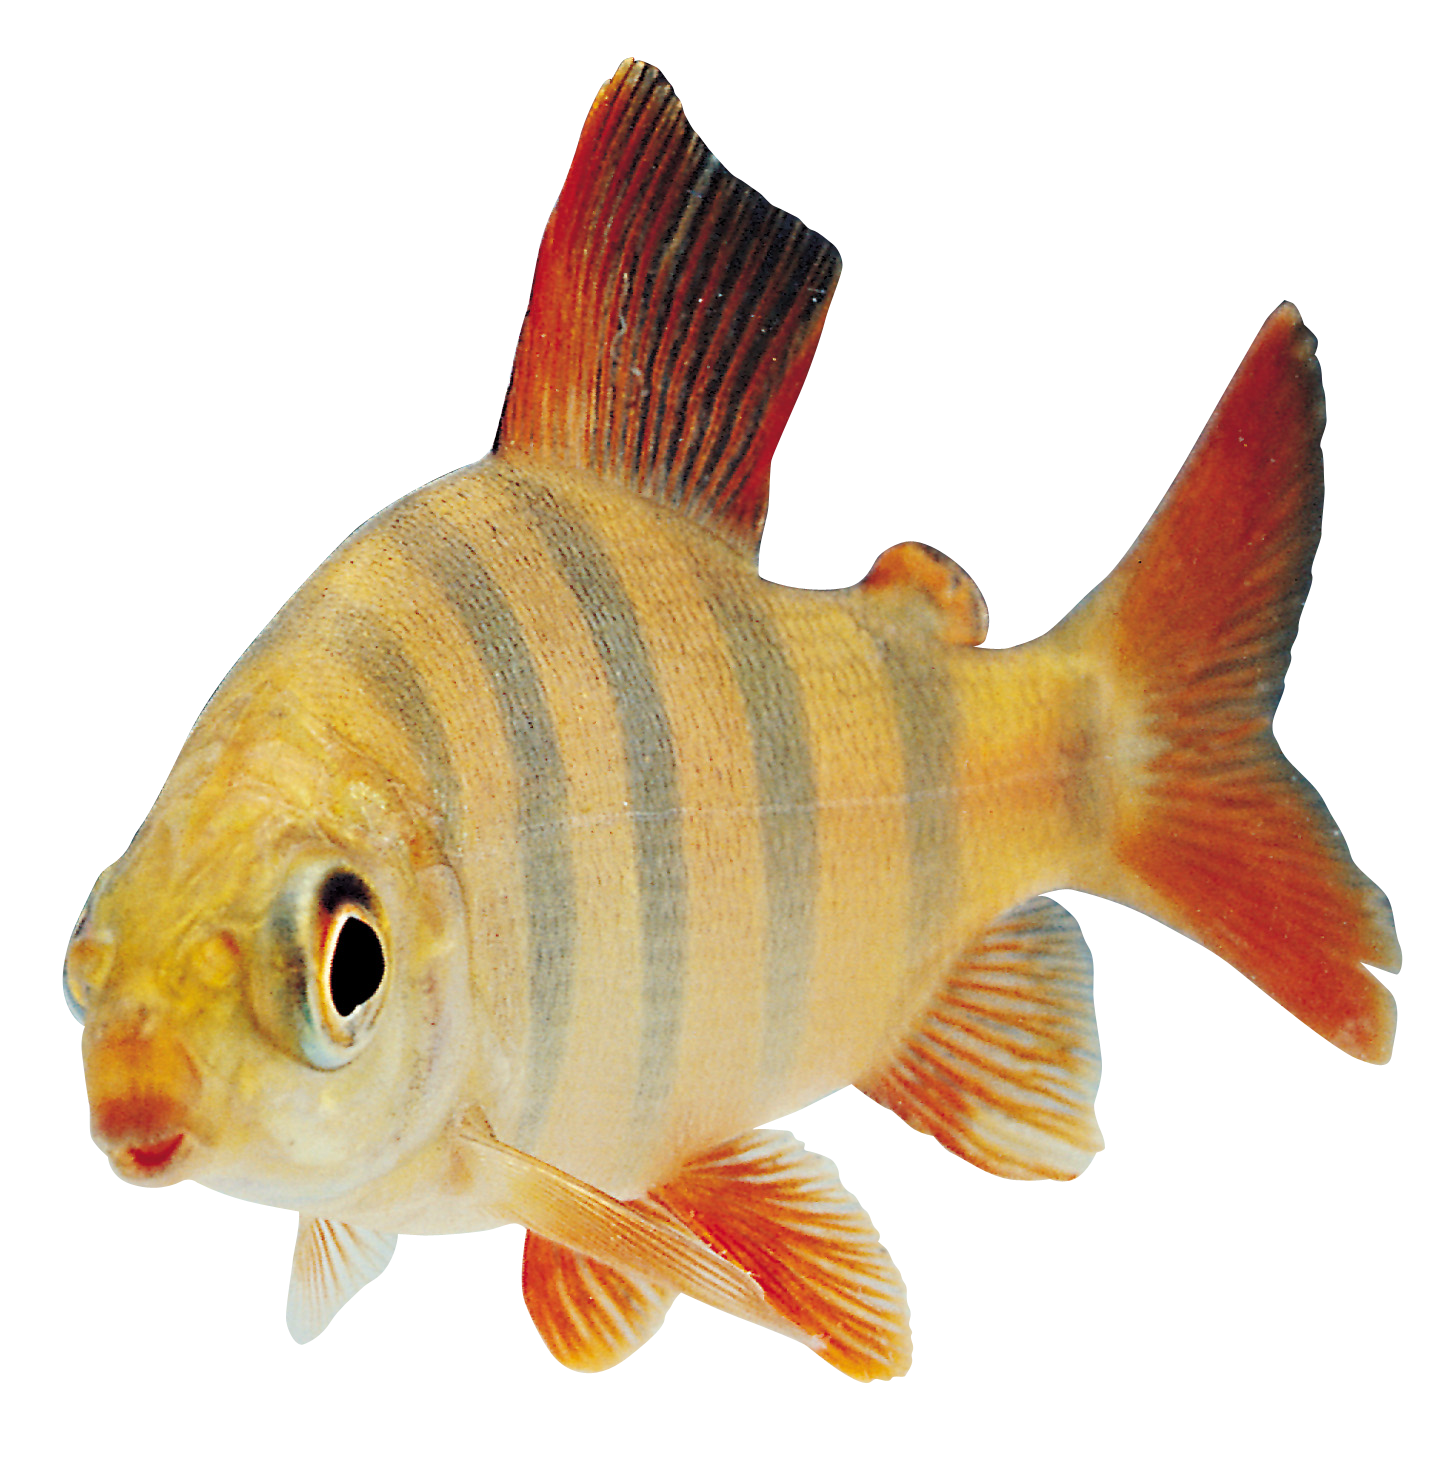 Fish Transparent Png By Absurdwordpreferred Png